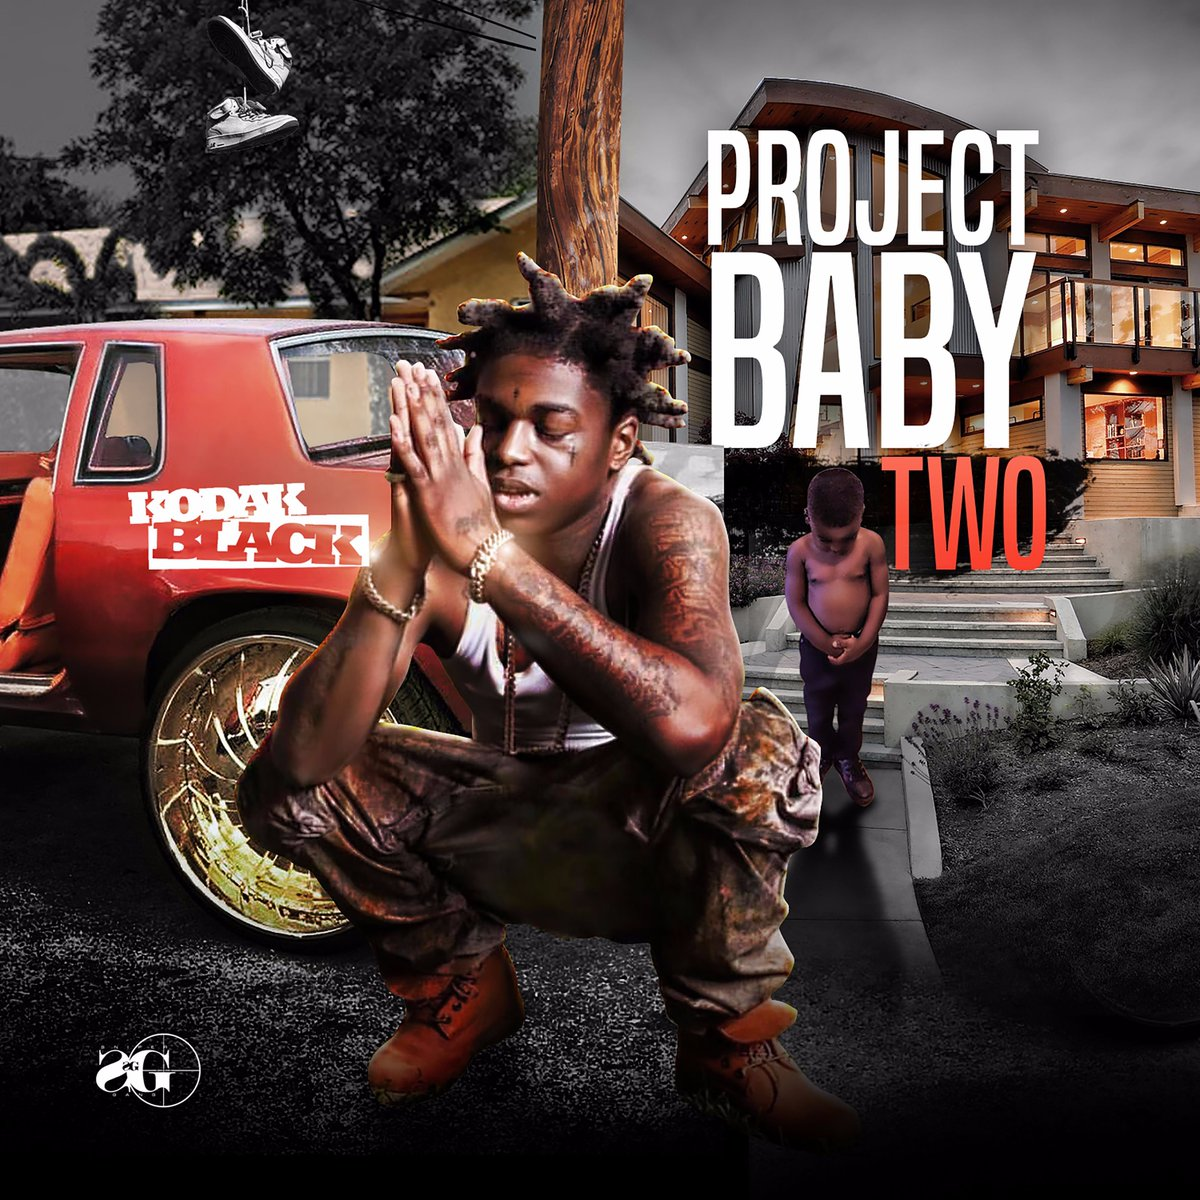 Kodak Black just dropped 'Project Baby 2' https://t.co/e465DV5H3F http...